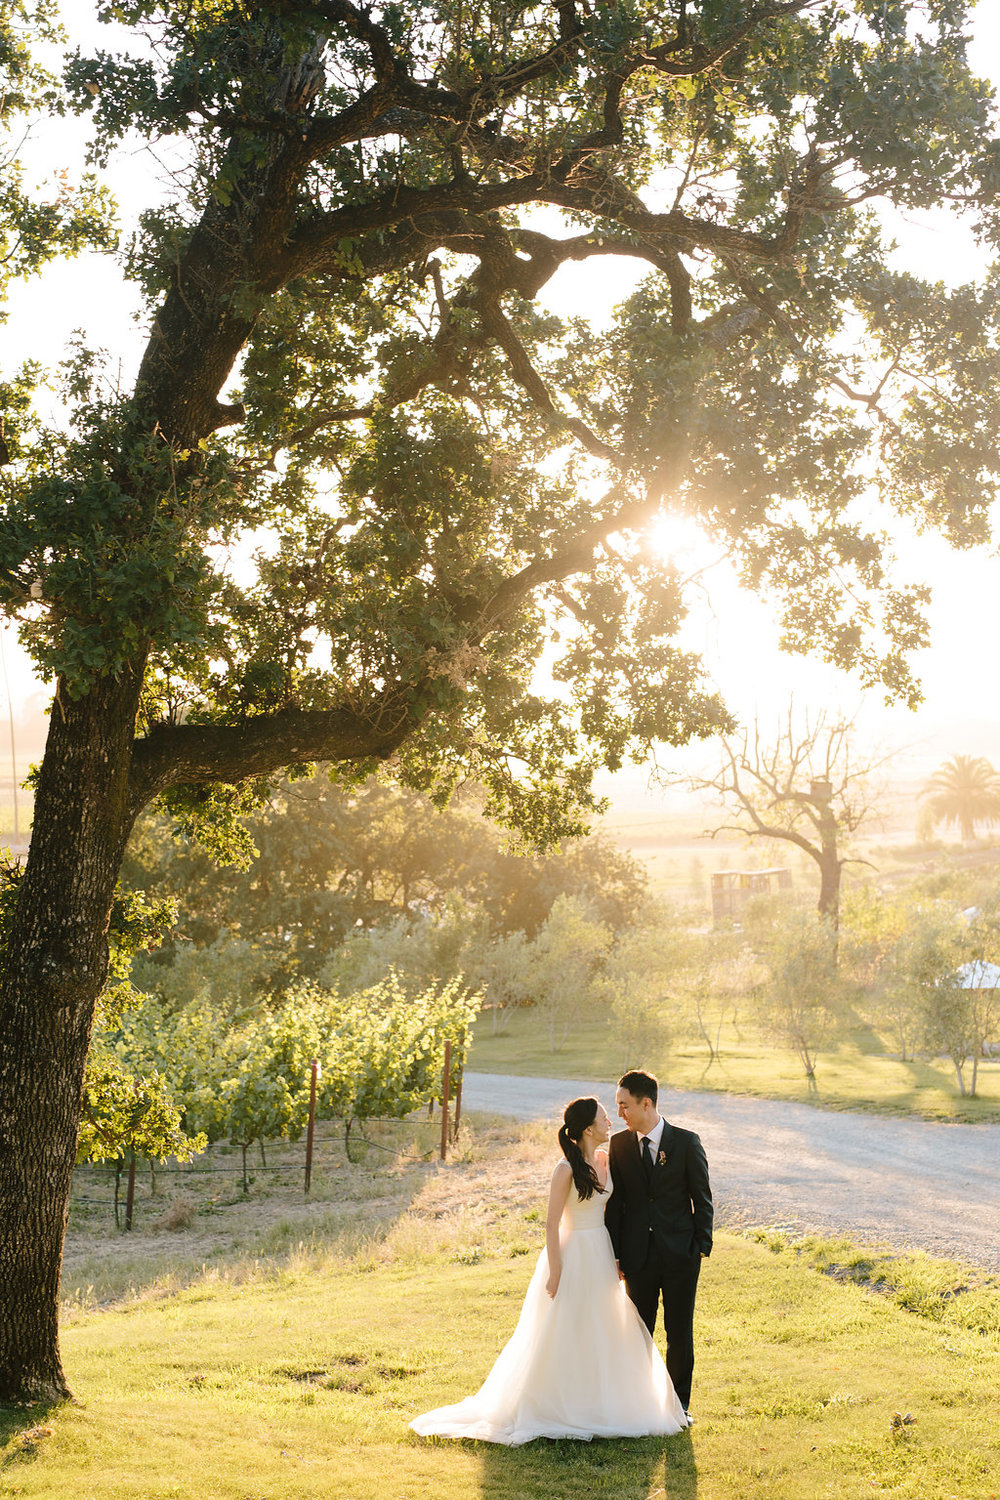 Simone-Anne-Wan-Mariola-Scribe-Winery-Wedding-Sneak-Peek-18.jpg